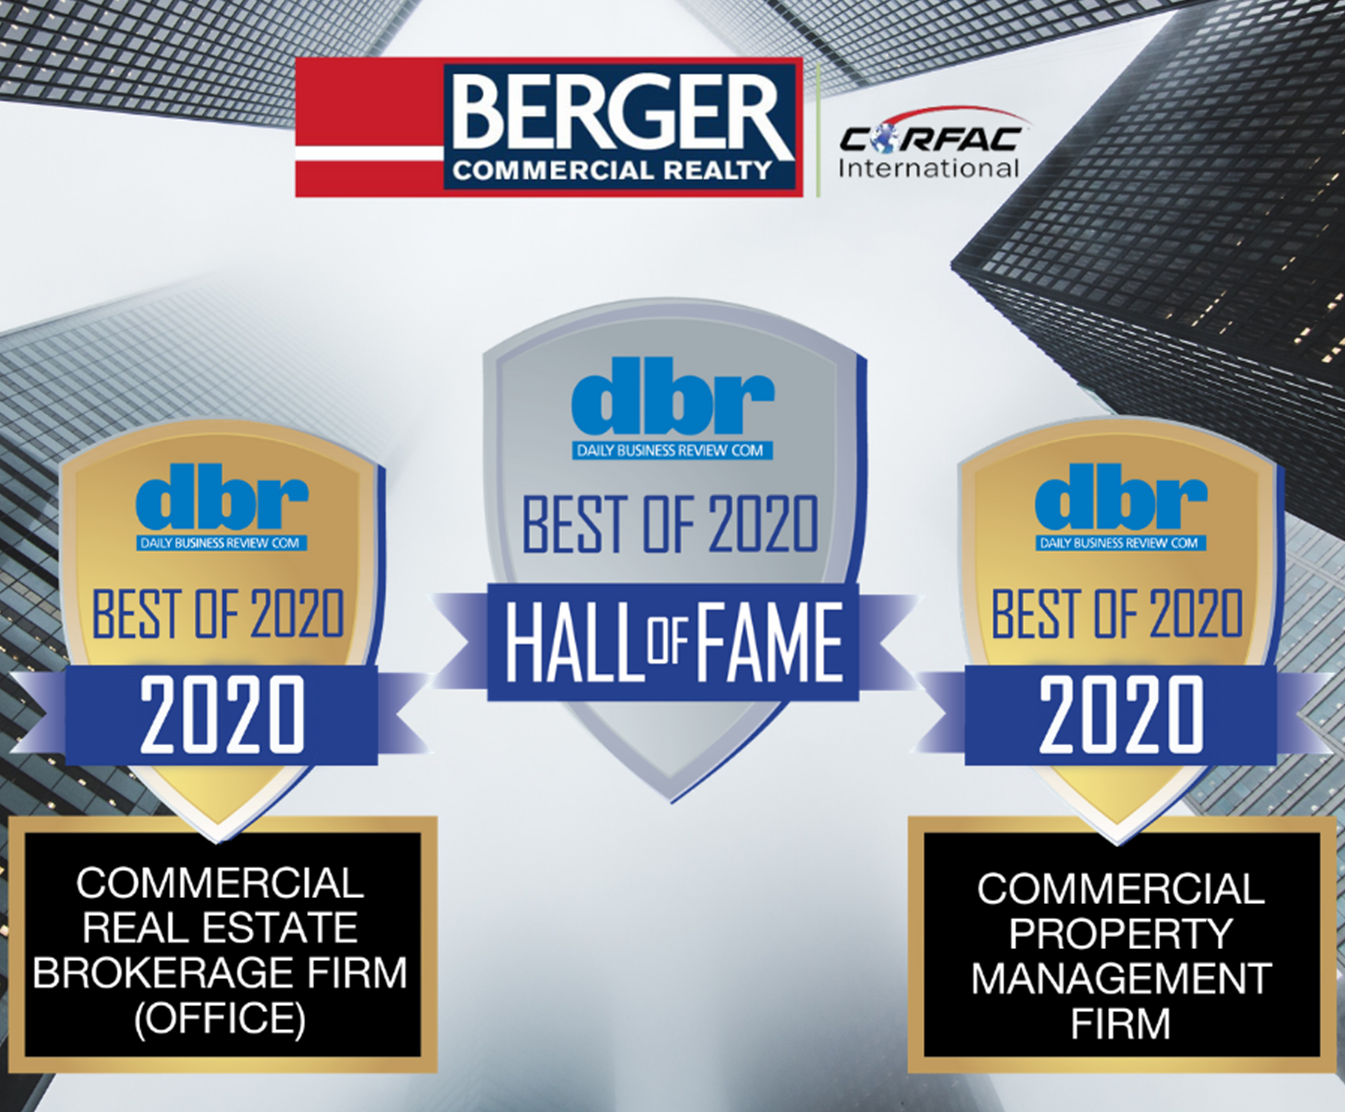 Berger-Best of 2020 Ad_300X250